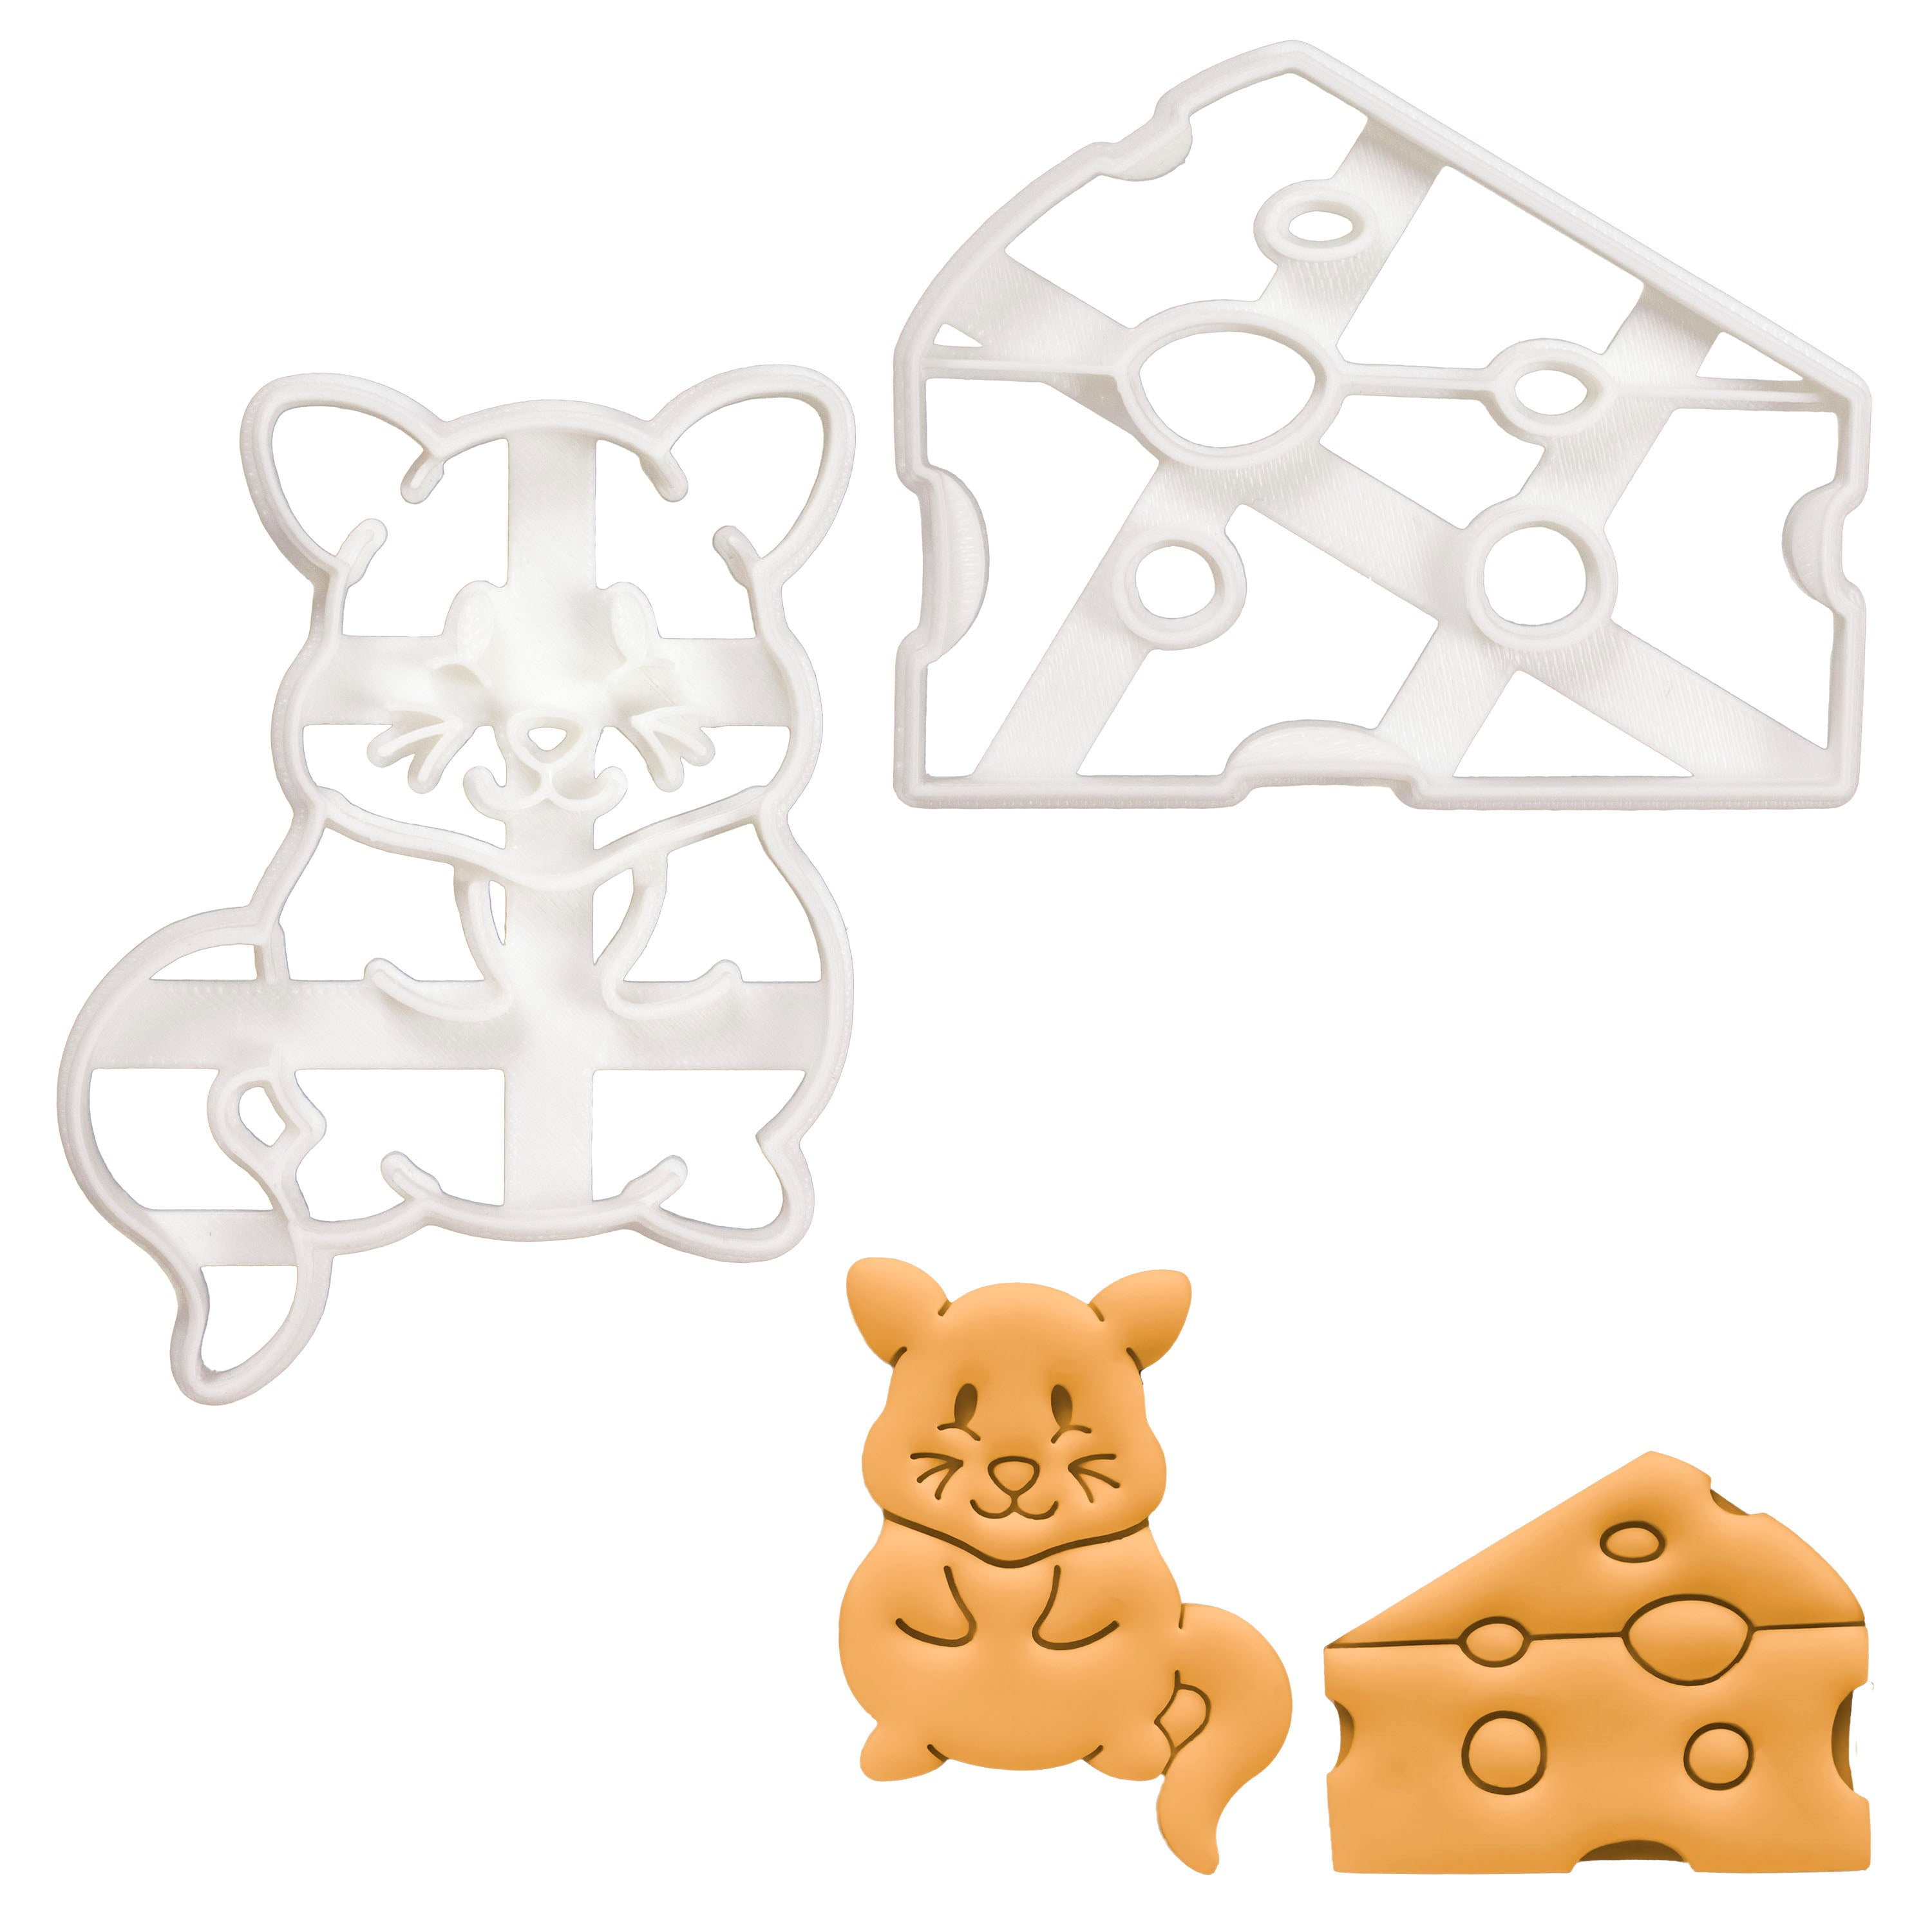 Set of 2 Cookie Cutters (Designs: Cheese and Cute Mouse)